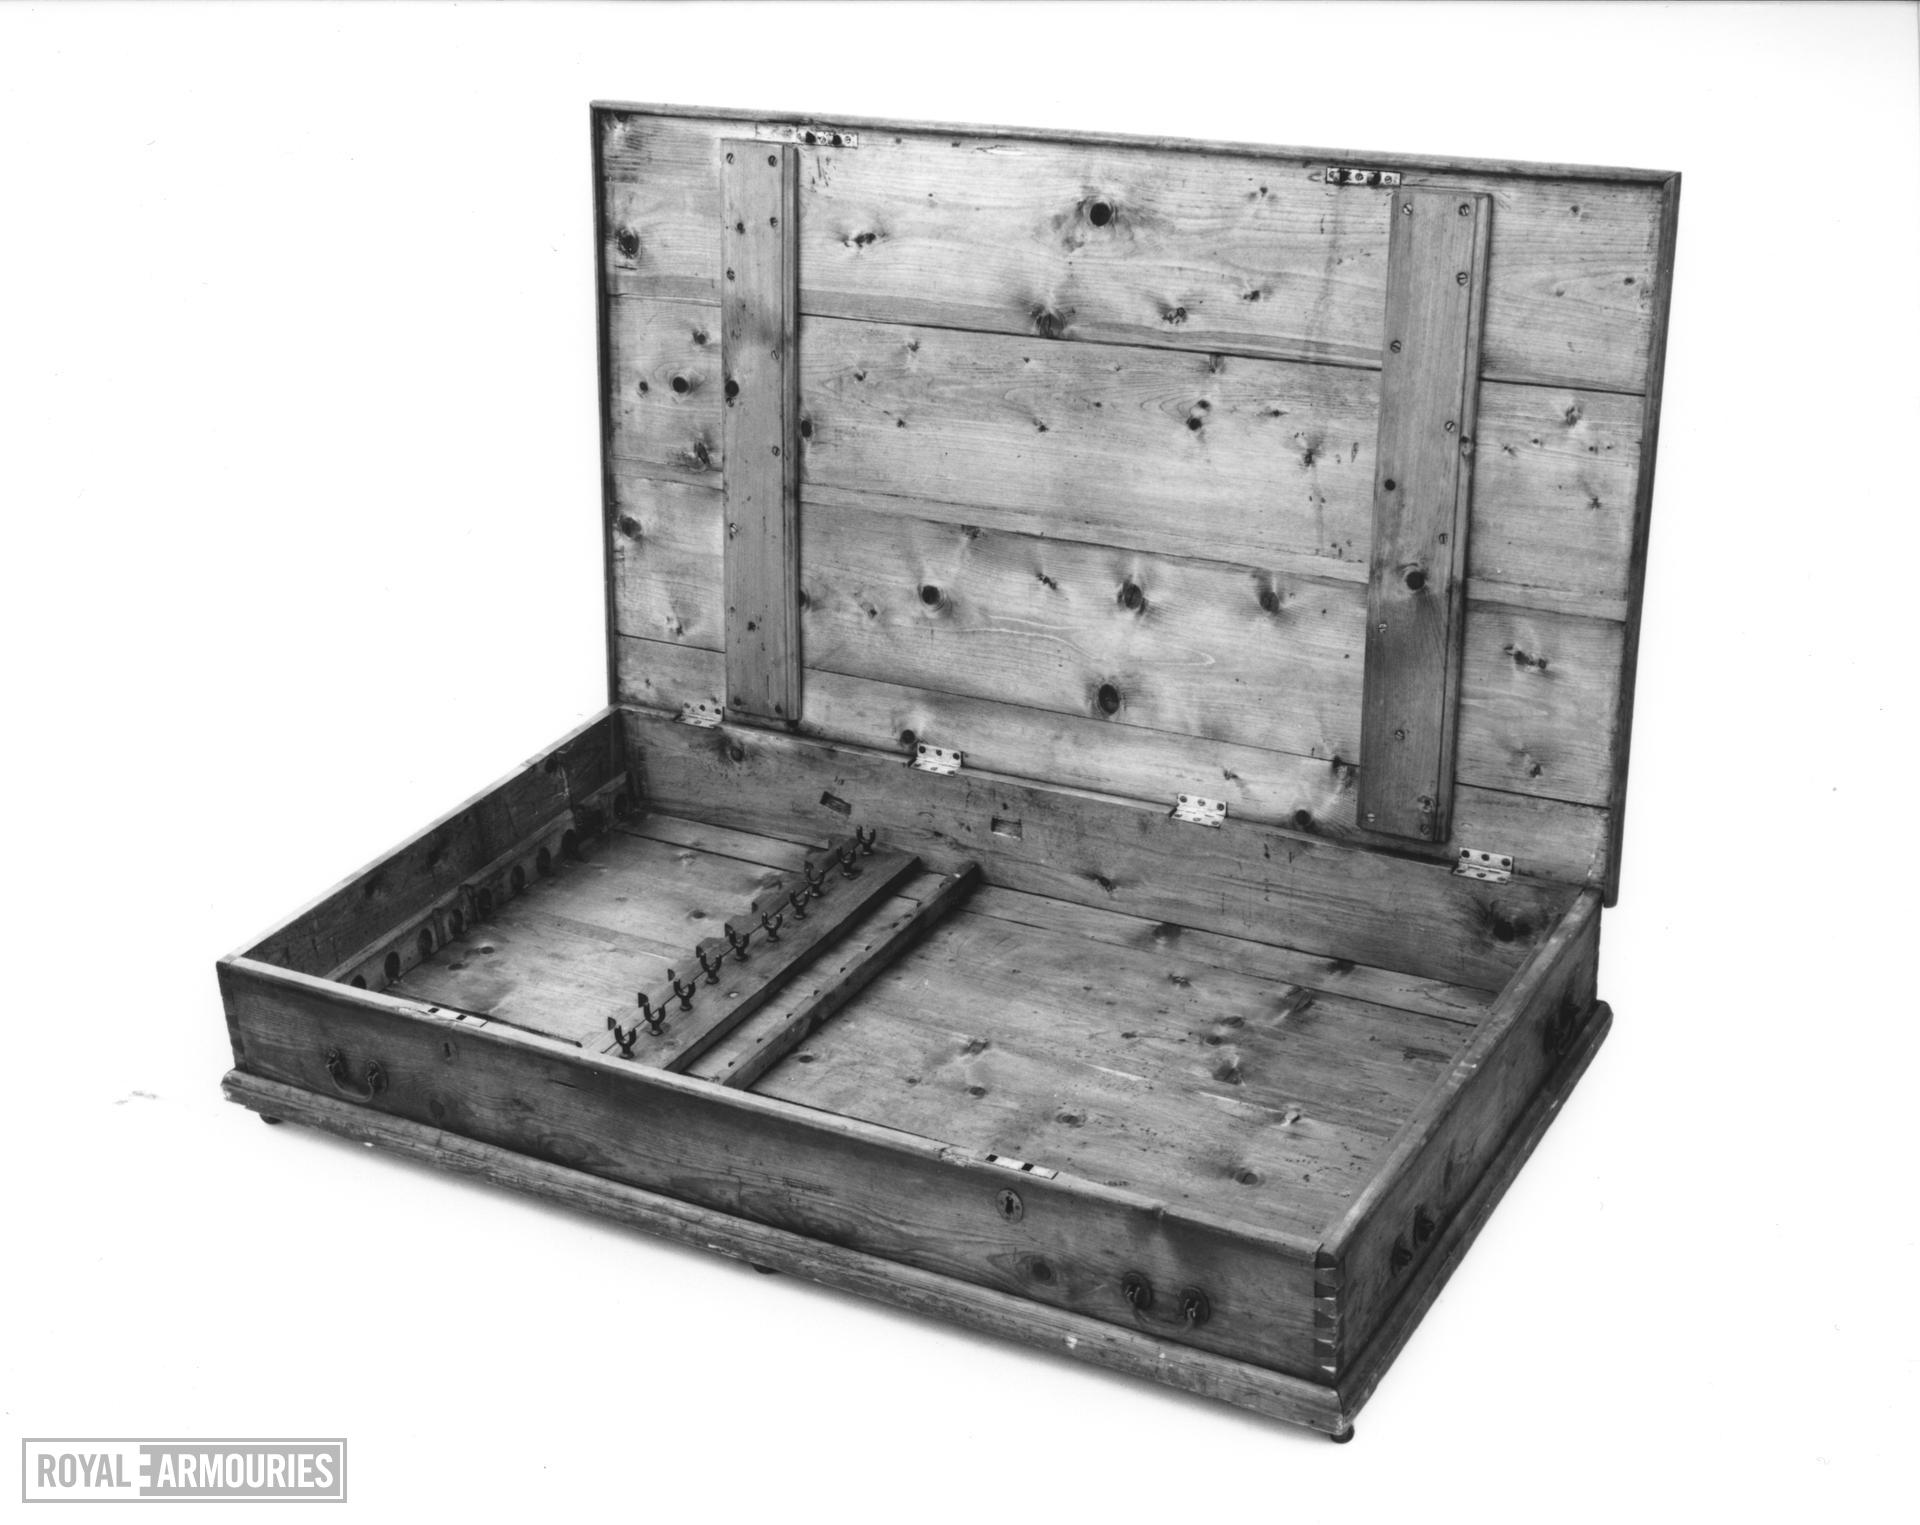 Chest of arms Made by Woolley, Sargant and Fairfax. Pine Chest containing twelve flintlock musketoons, pistols, bayonets and cutlasses